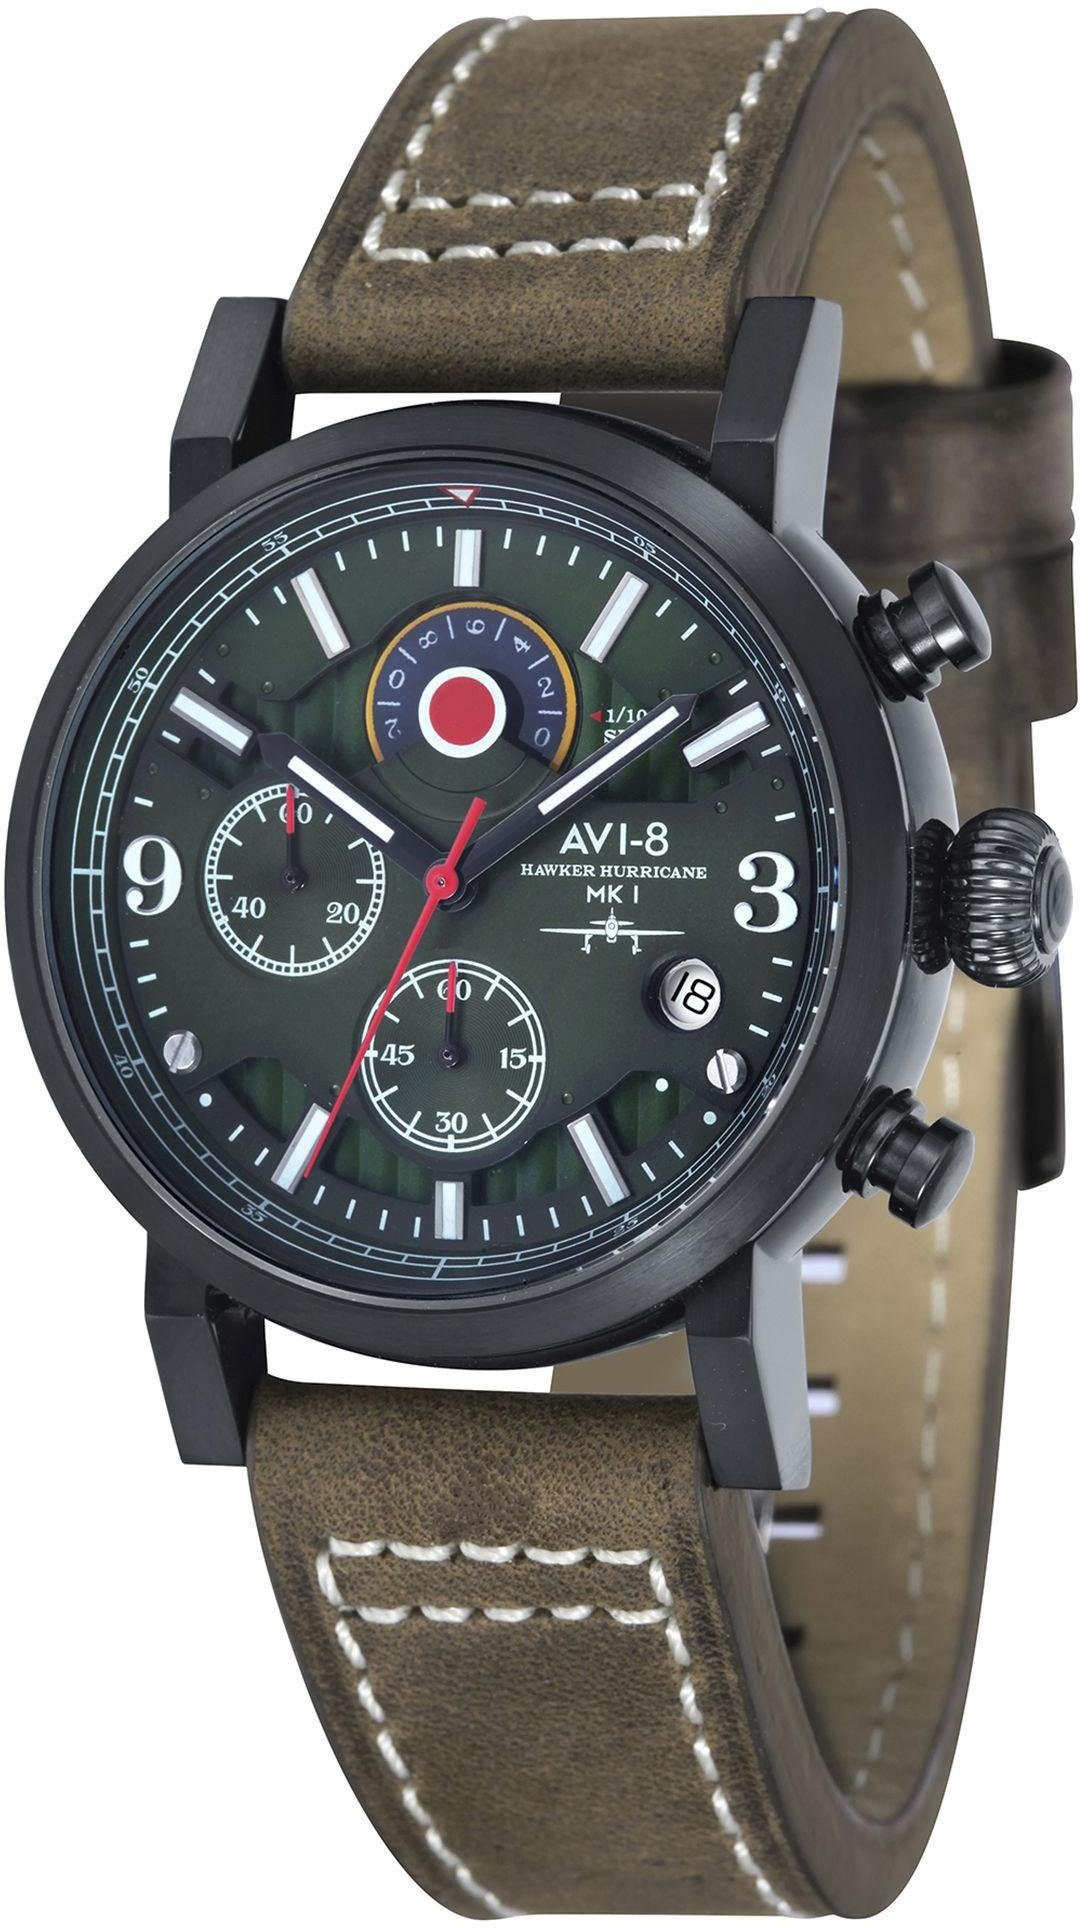 AVI-8 Chronograph »Hawker Hurricane, Av-4041-04«